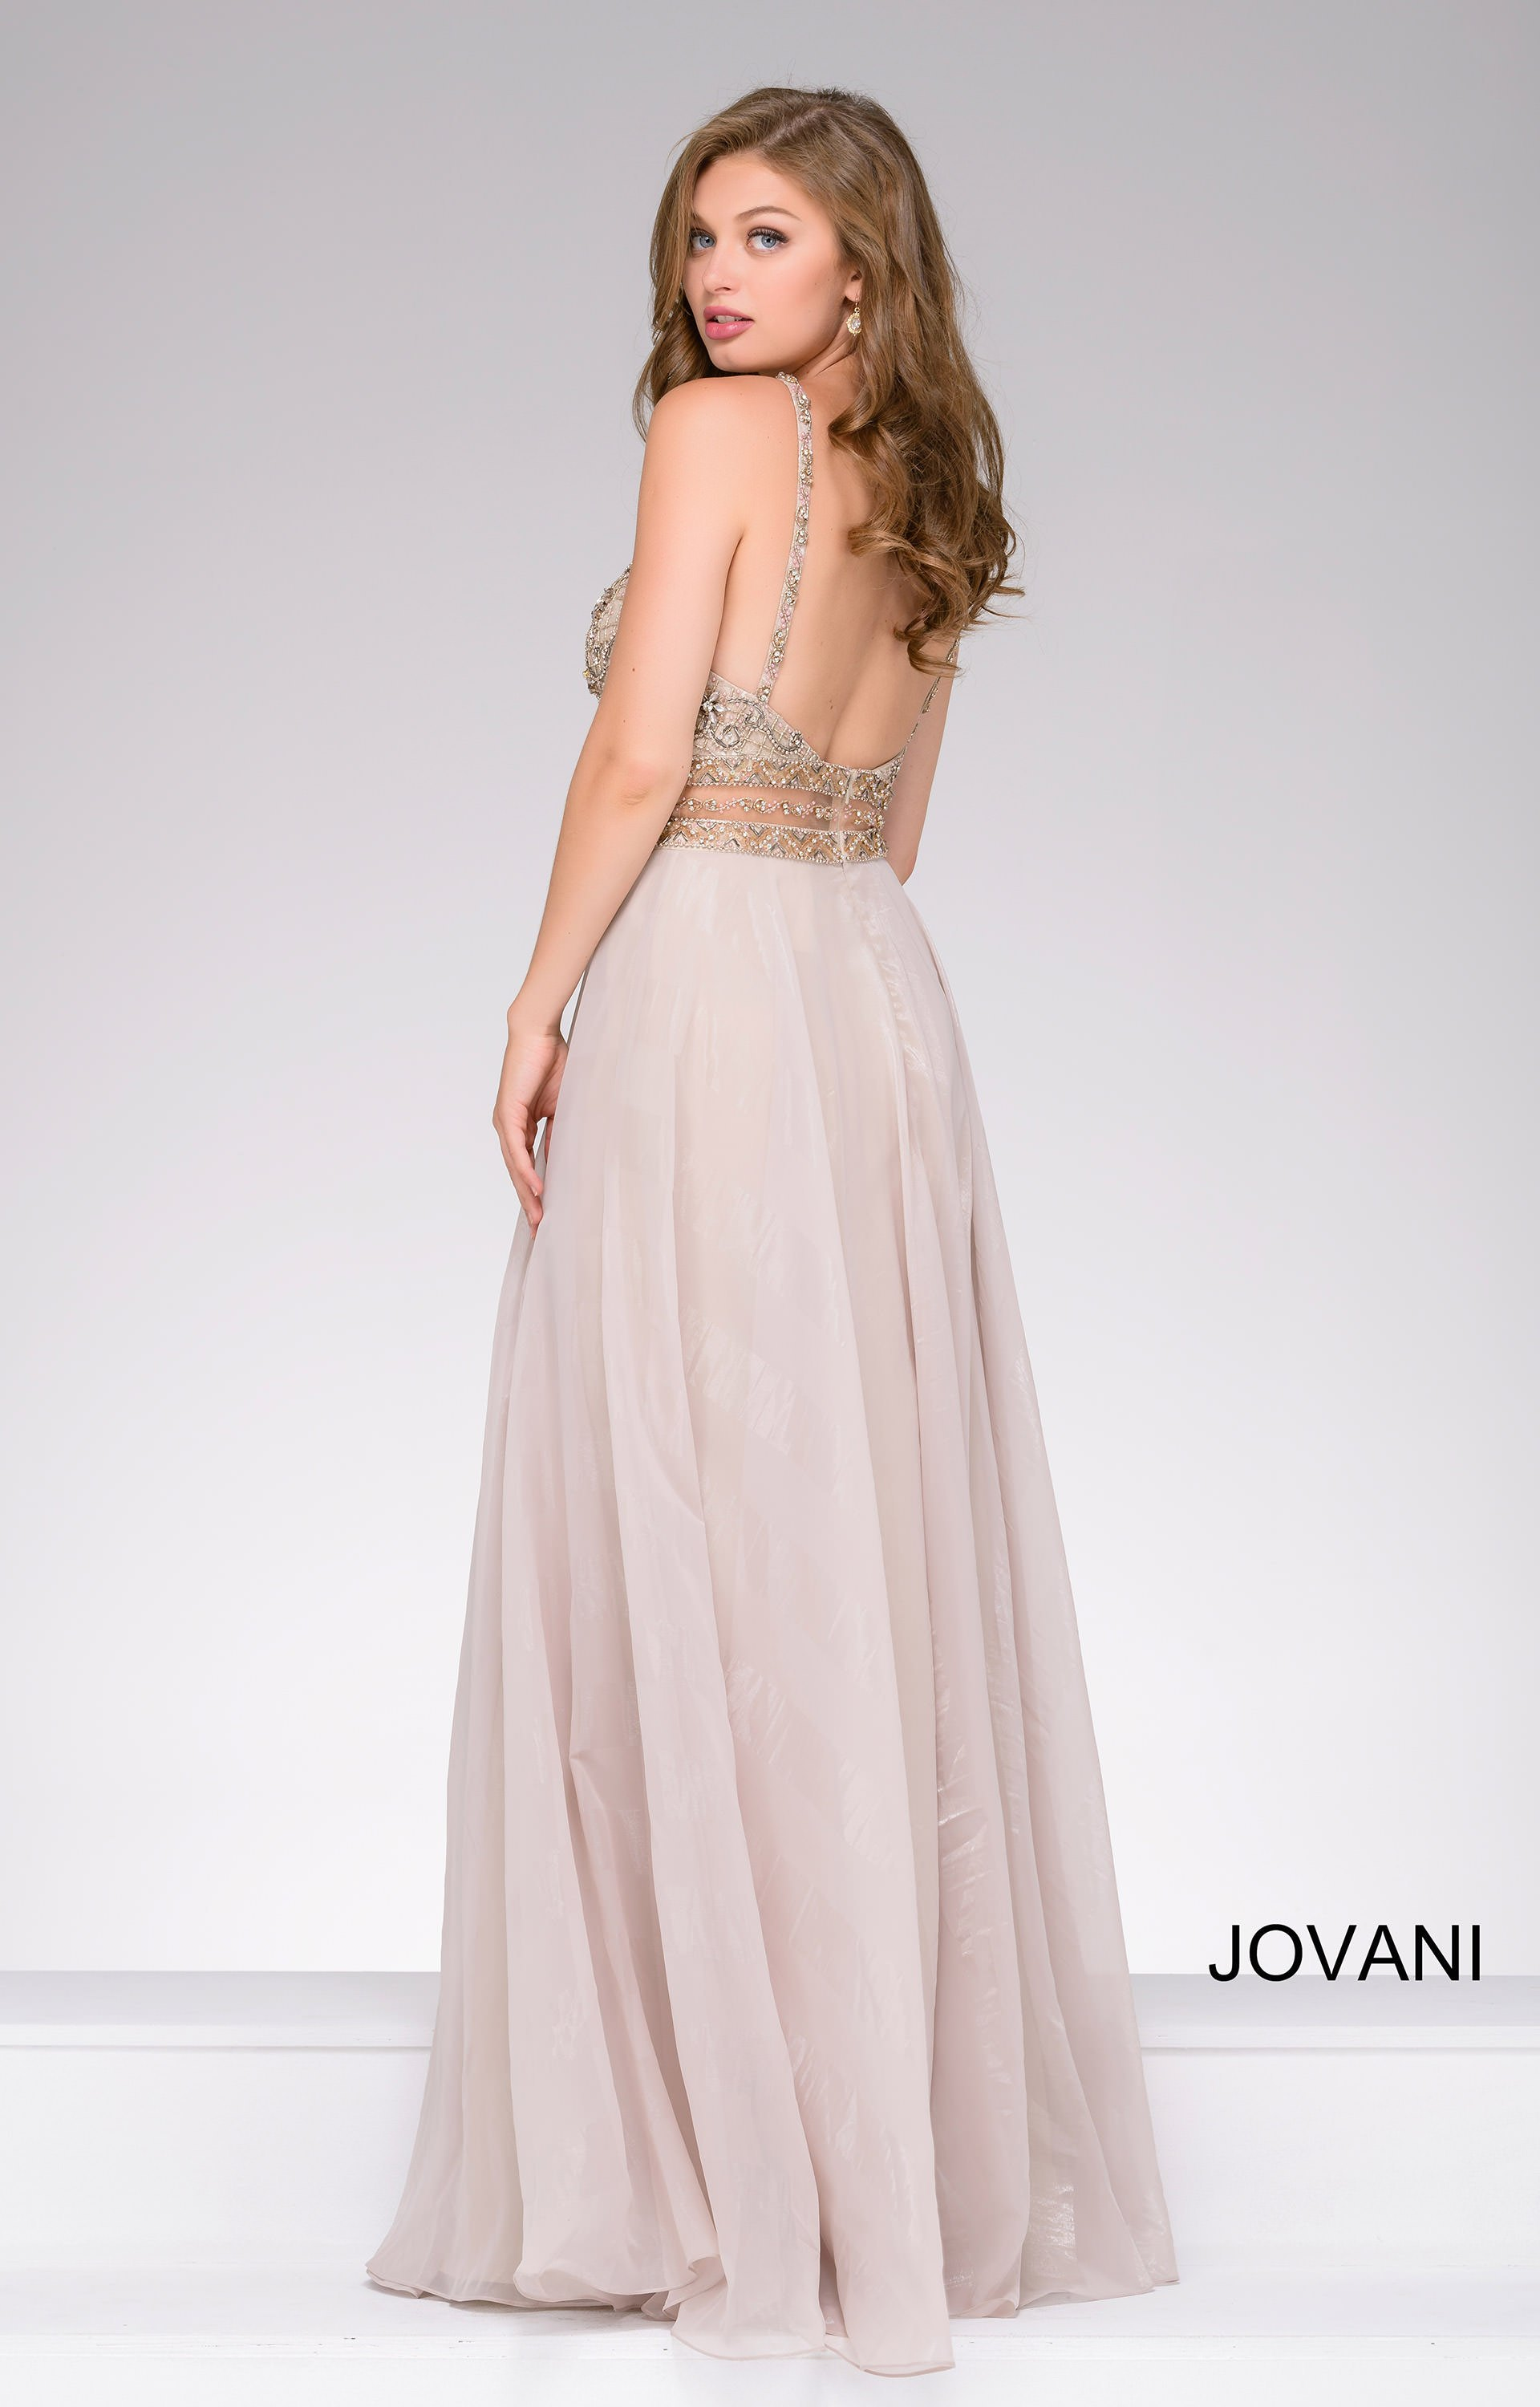 Jovani 41597 Bedazzled Halter High Neck Dress With